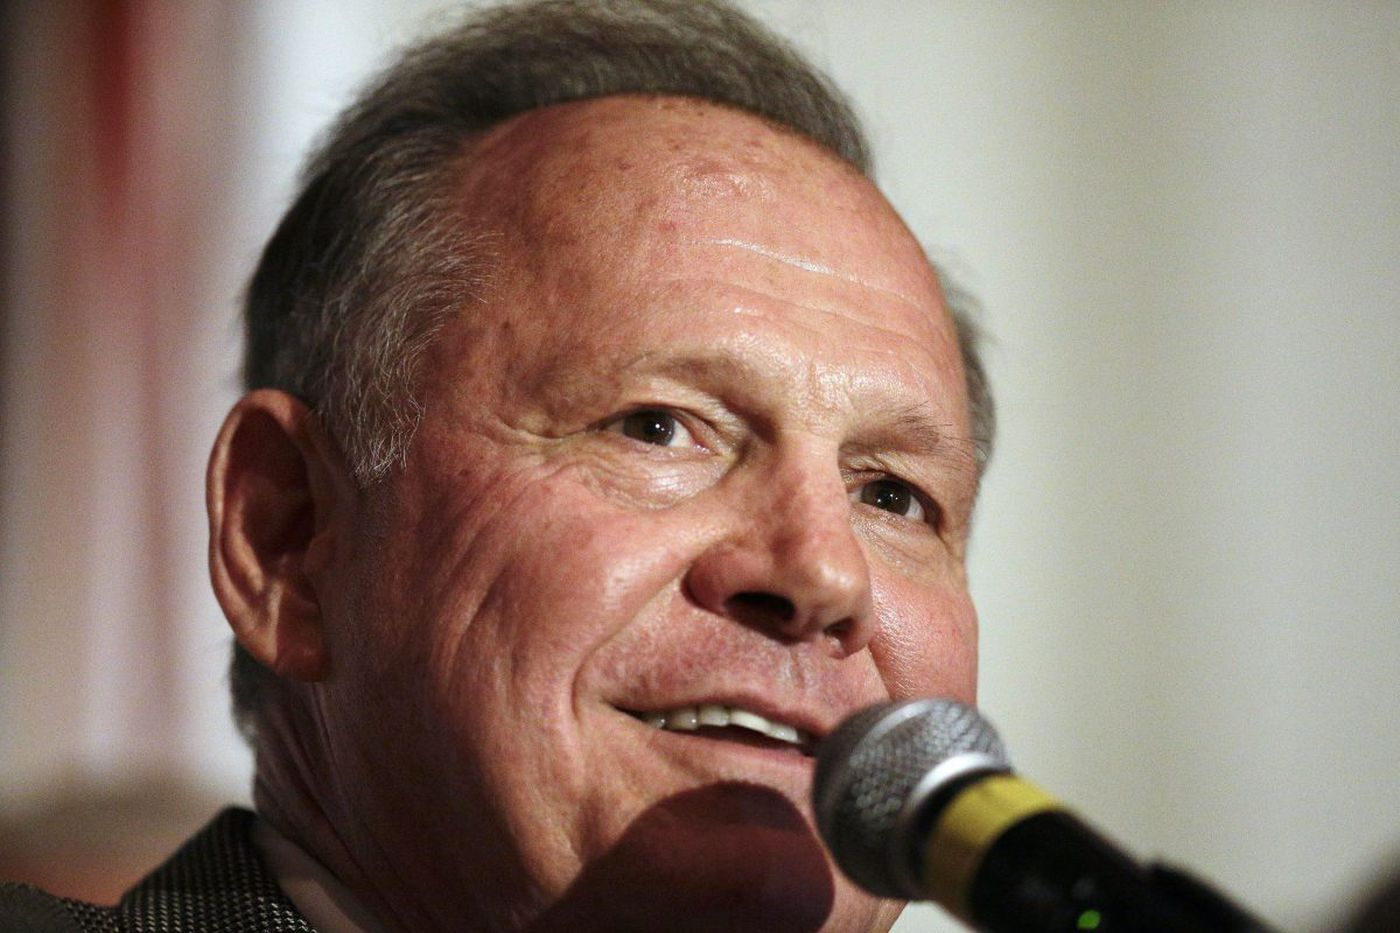 Senate candidate Roy Moore says kneeling during anthem is against the law